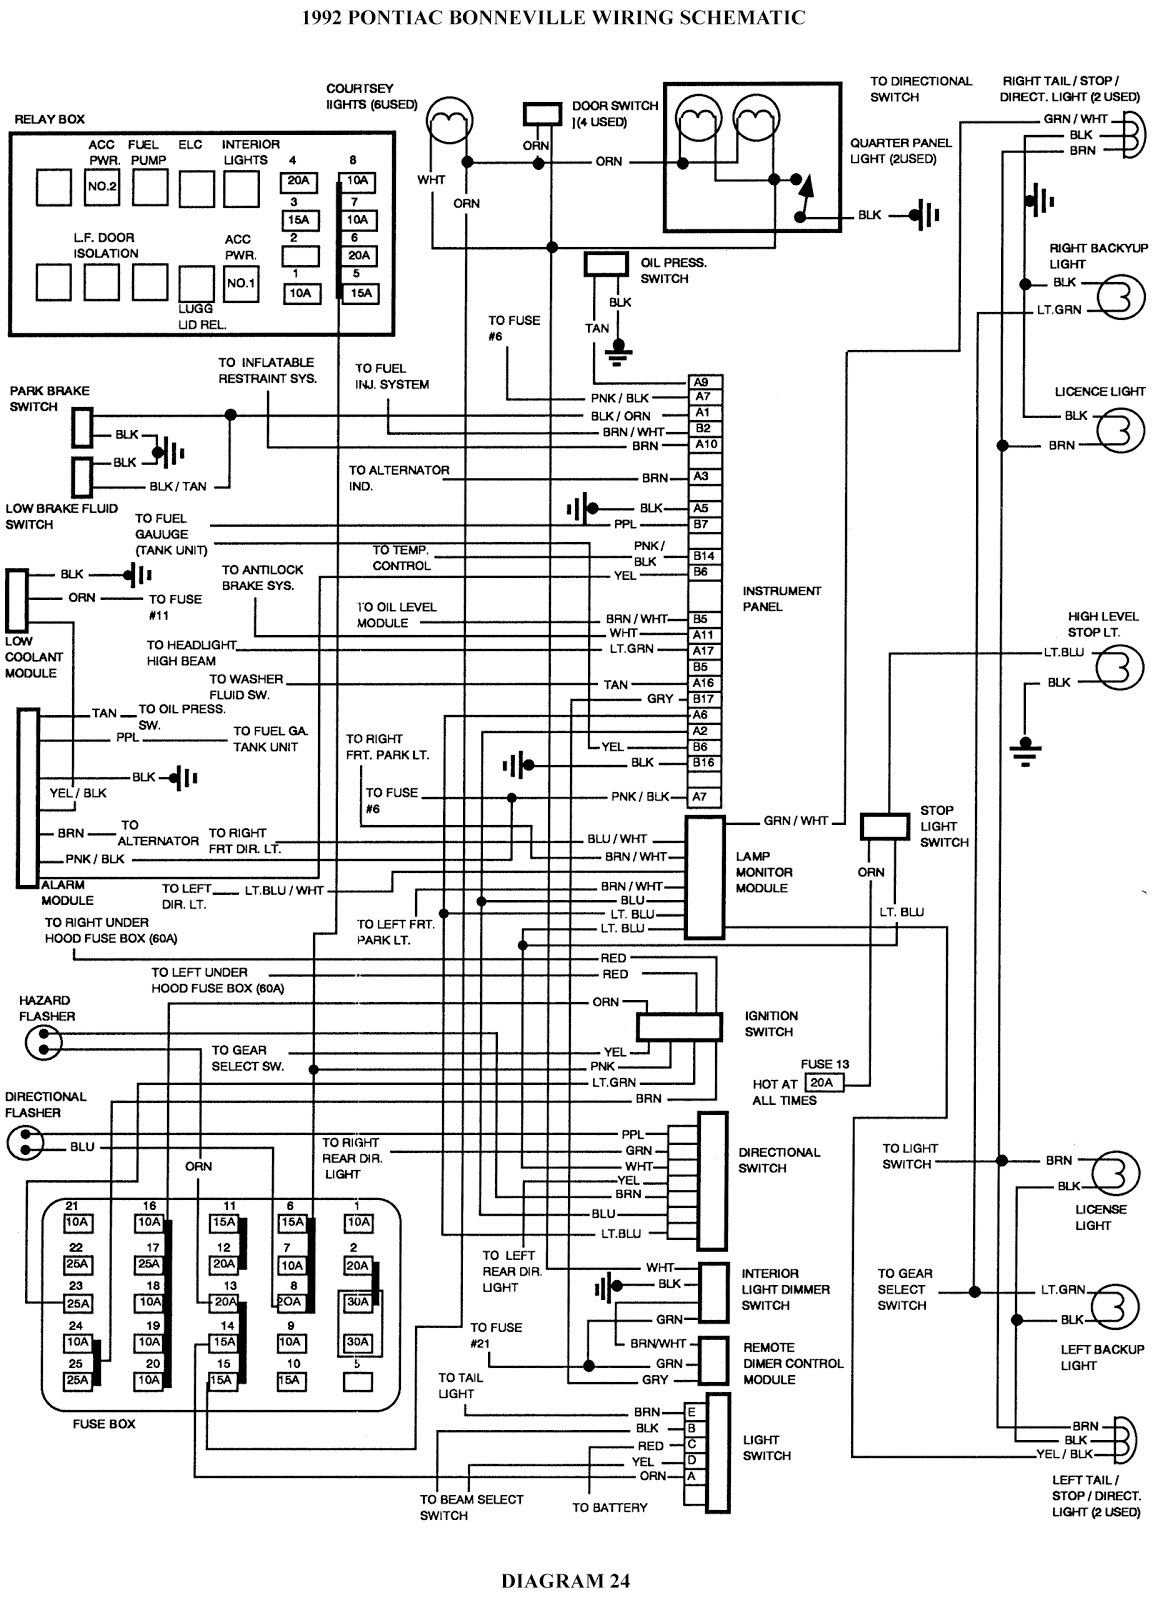 install wiring schematic for 1995 pontiac bonneville